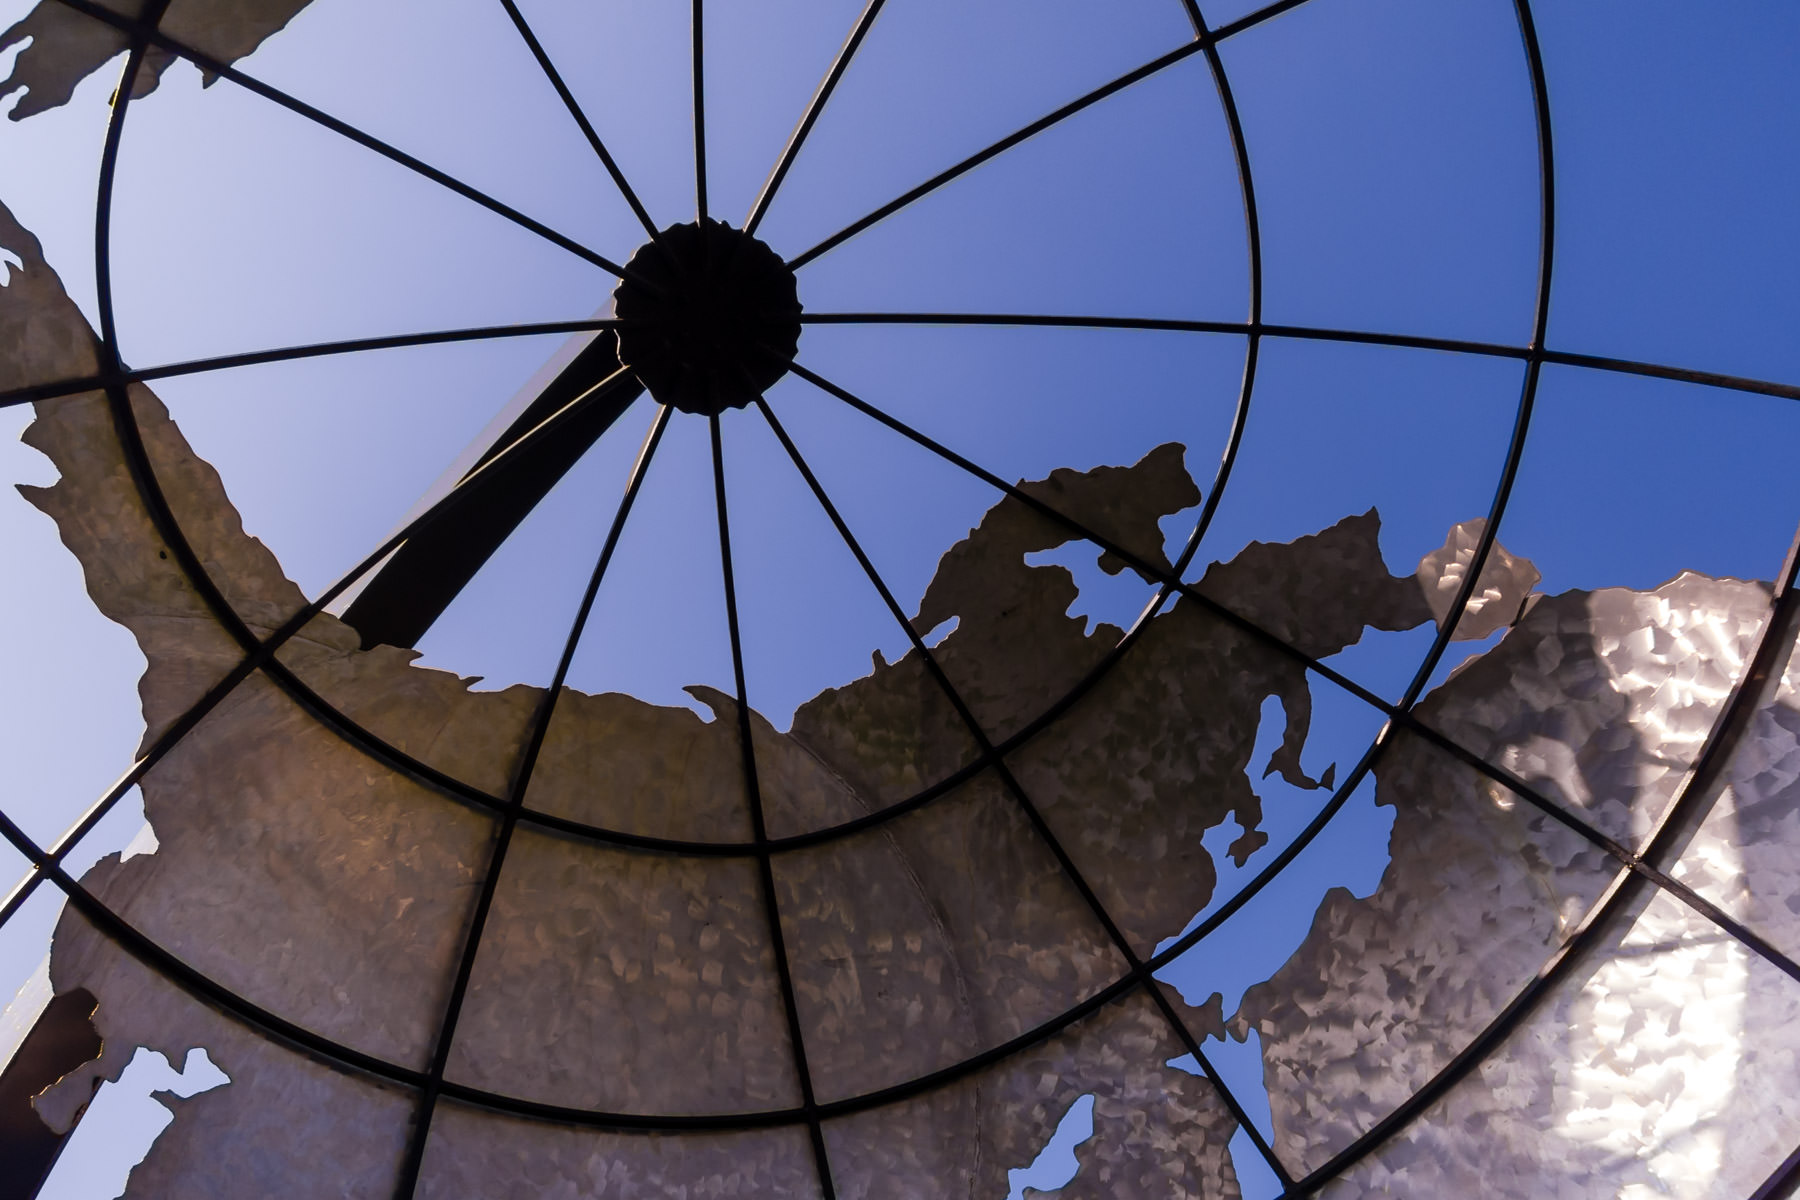 Europe, Asia and part of Africa as seen from inside a giant globe sculpture at an Addison, Texas, office building.